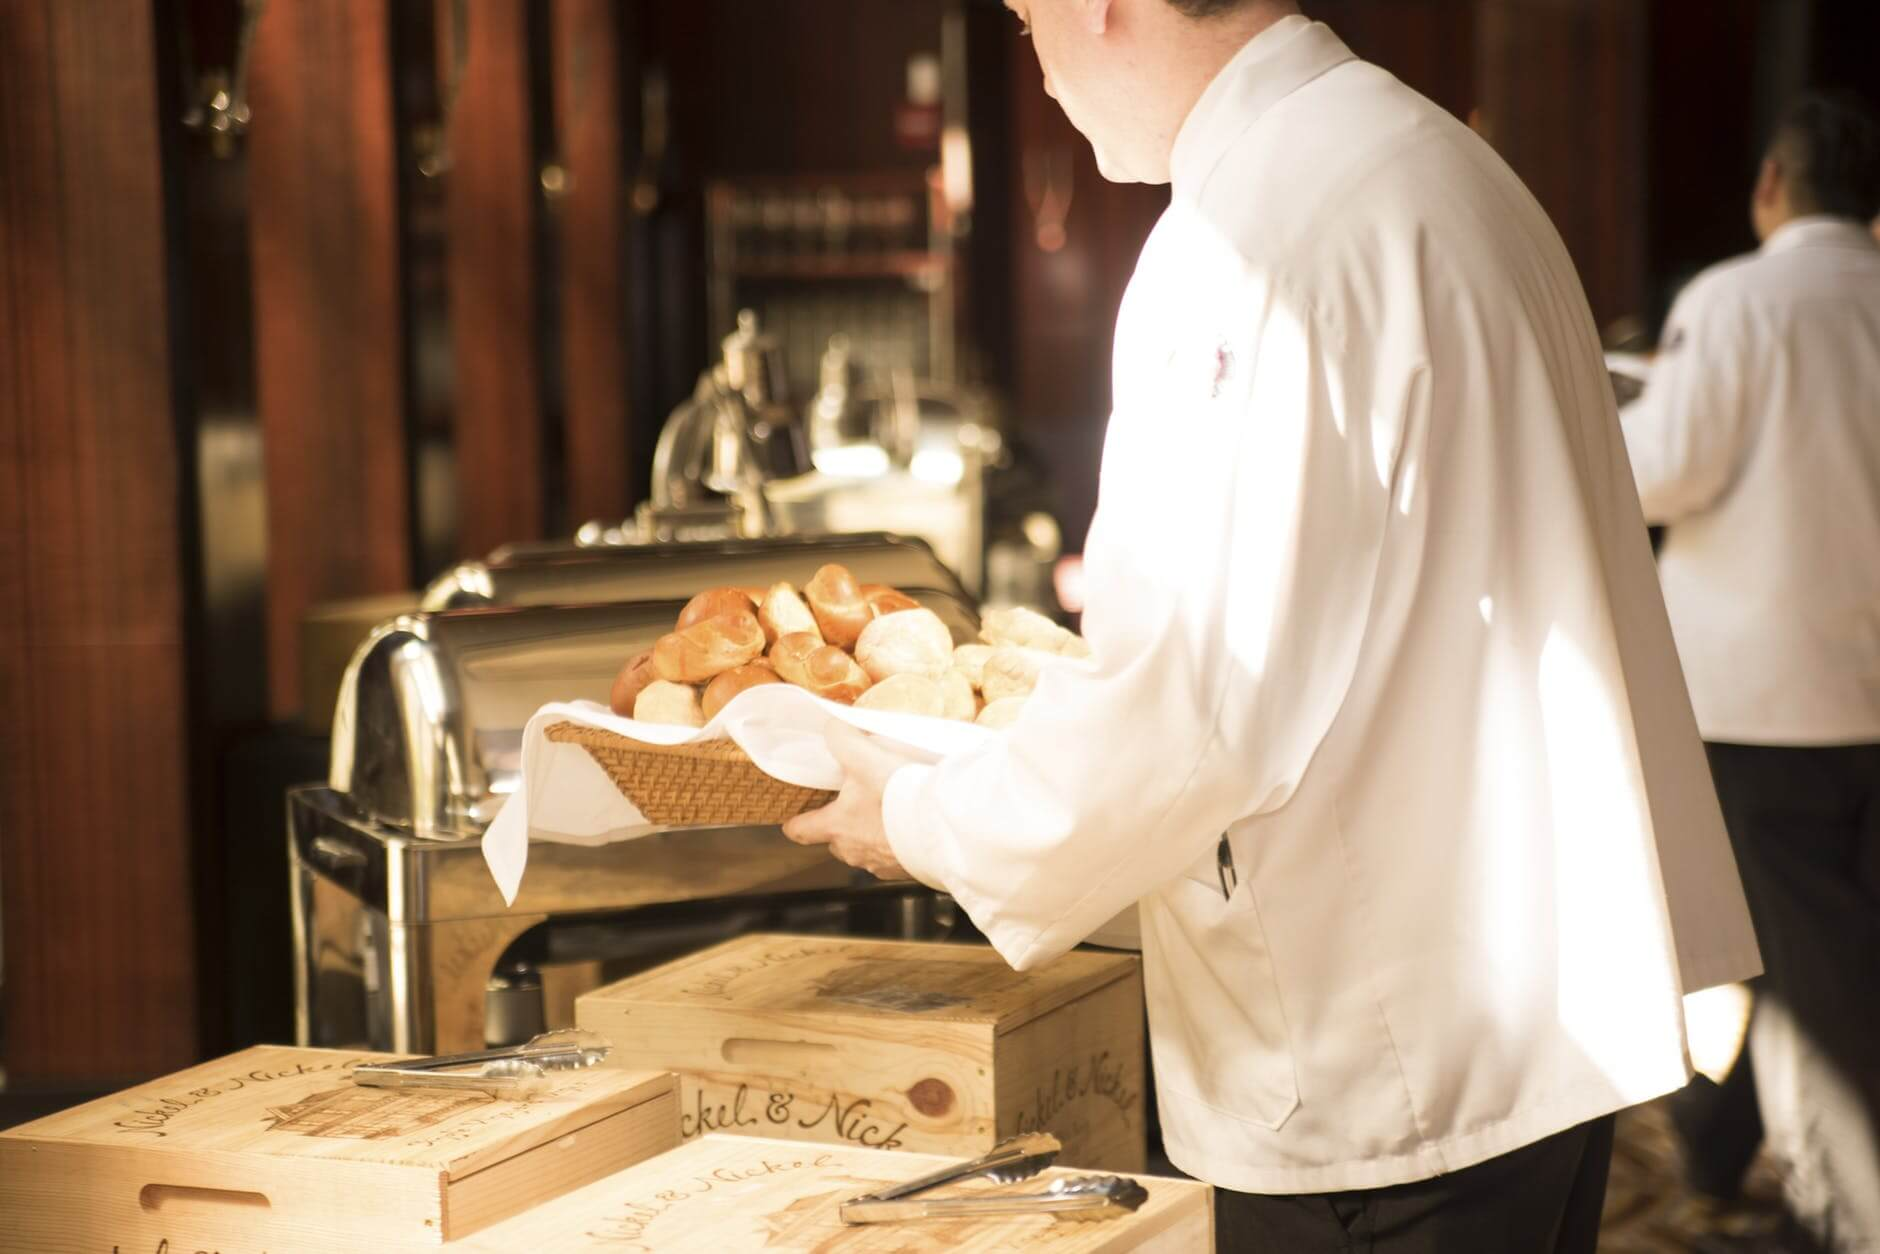 Apprenticeships in Hospitality & Catering